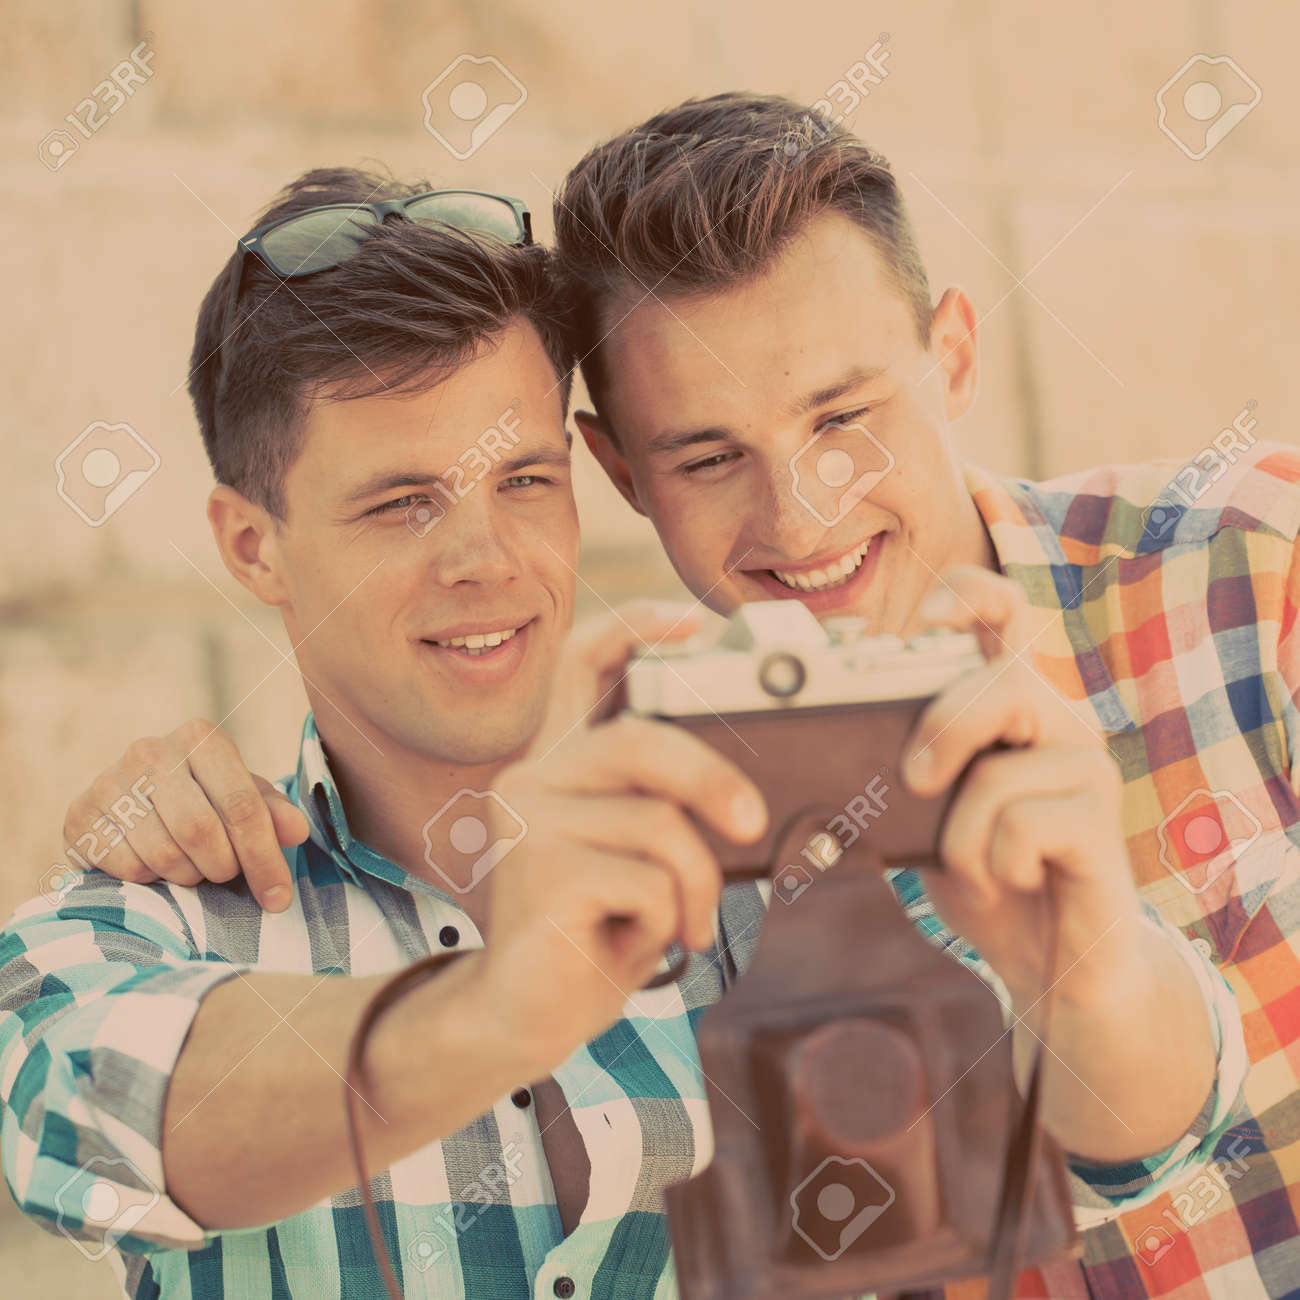 two guys photographing with retro photo camera stock photo picture